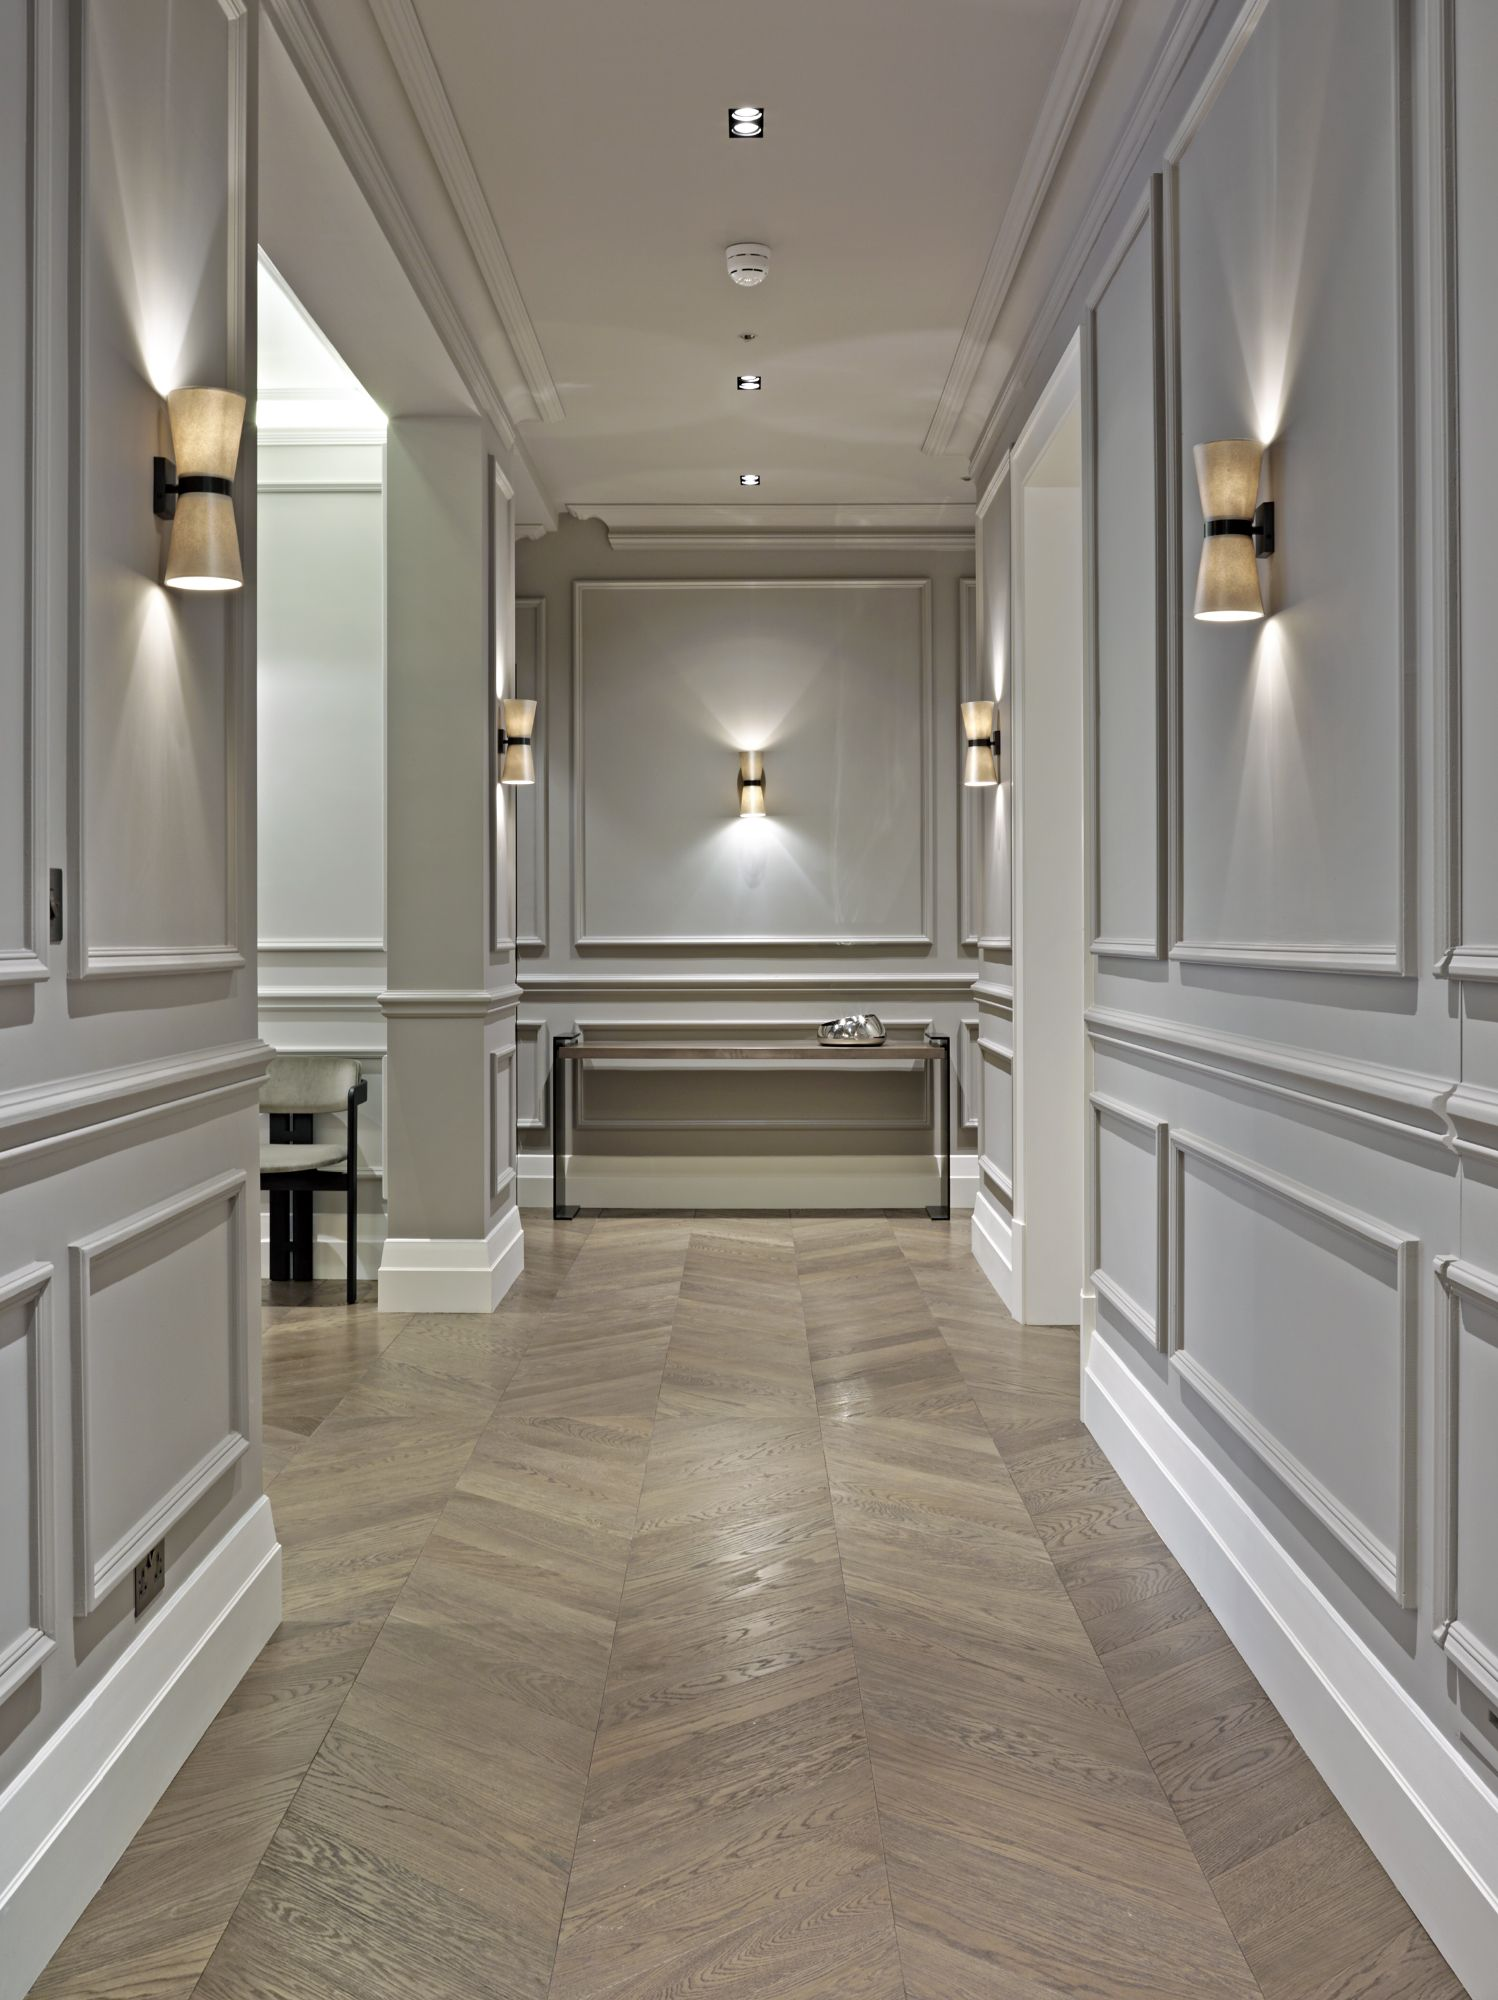 Wainscoting Ideas For Living Room Best Quality Furniture 7 Styles To Design Every Your Next Project 27 Stylish Tags Bedroom Dining Bathrooms Kitchen